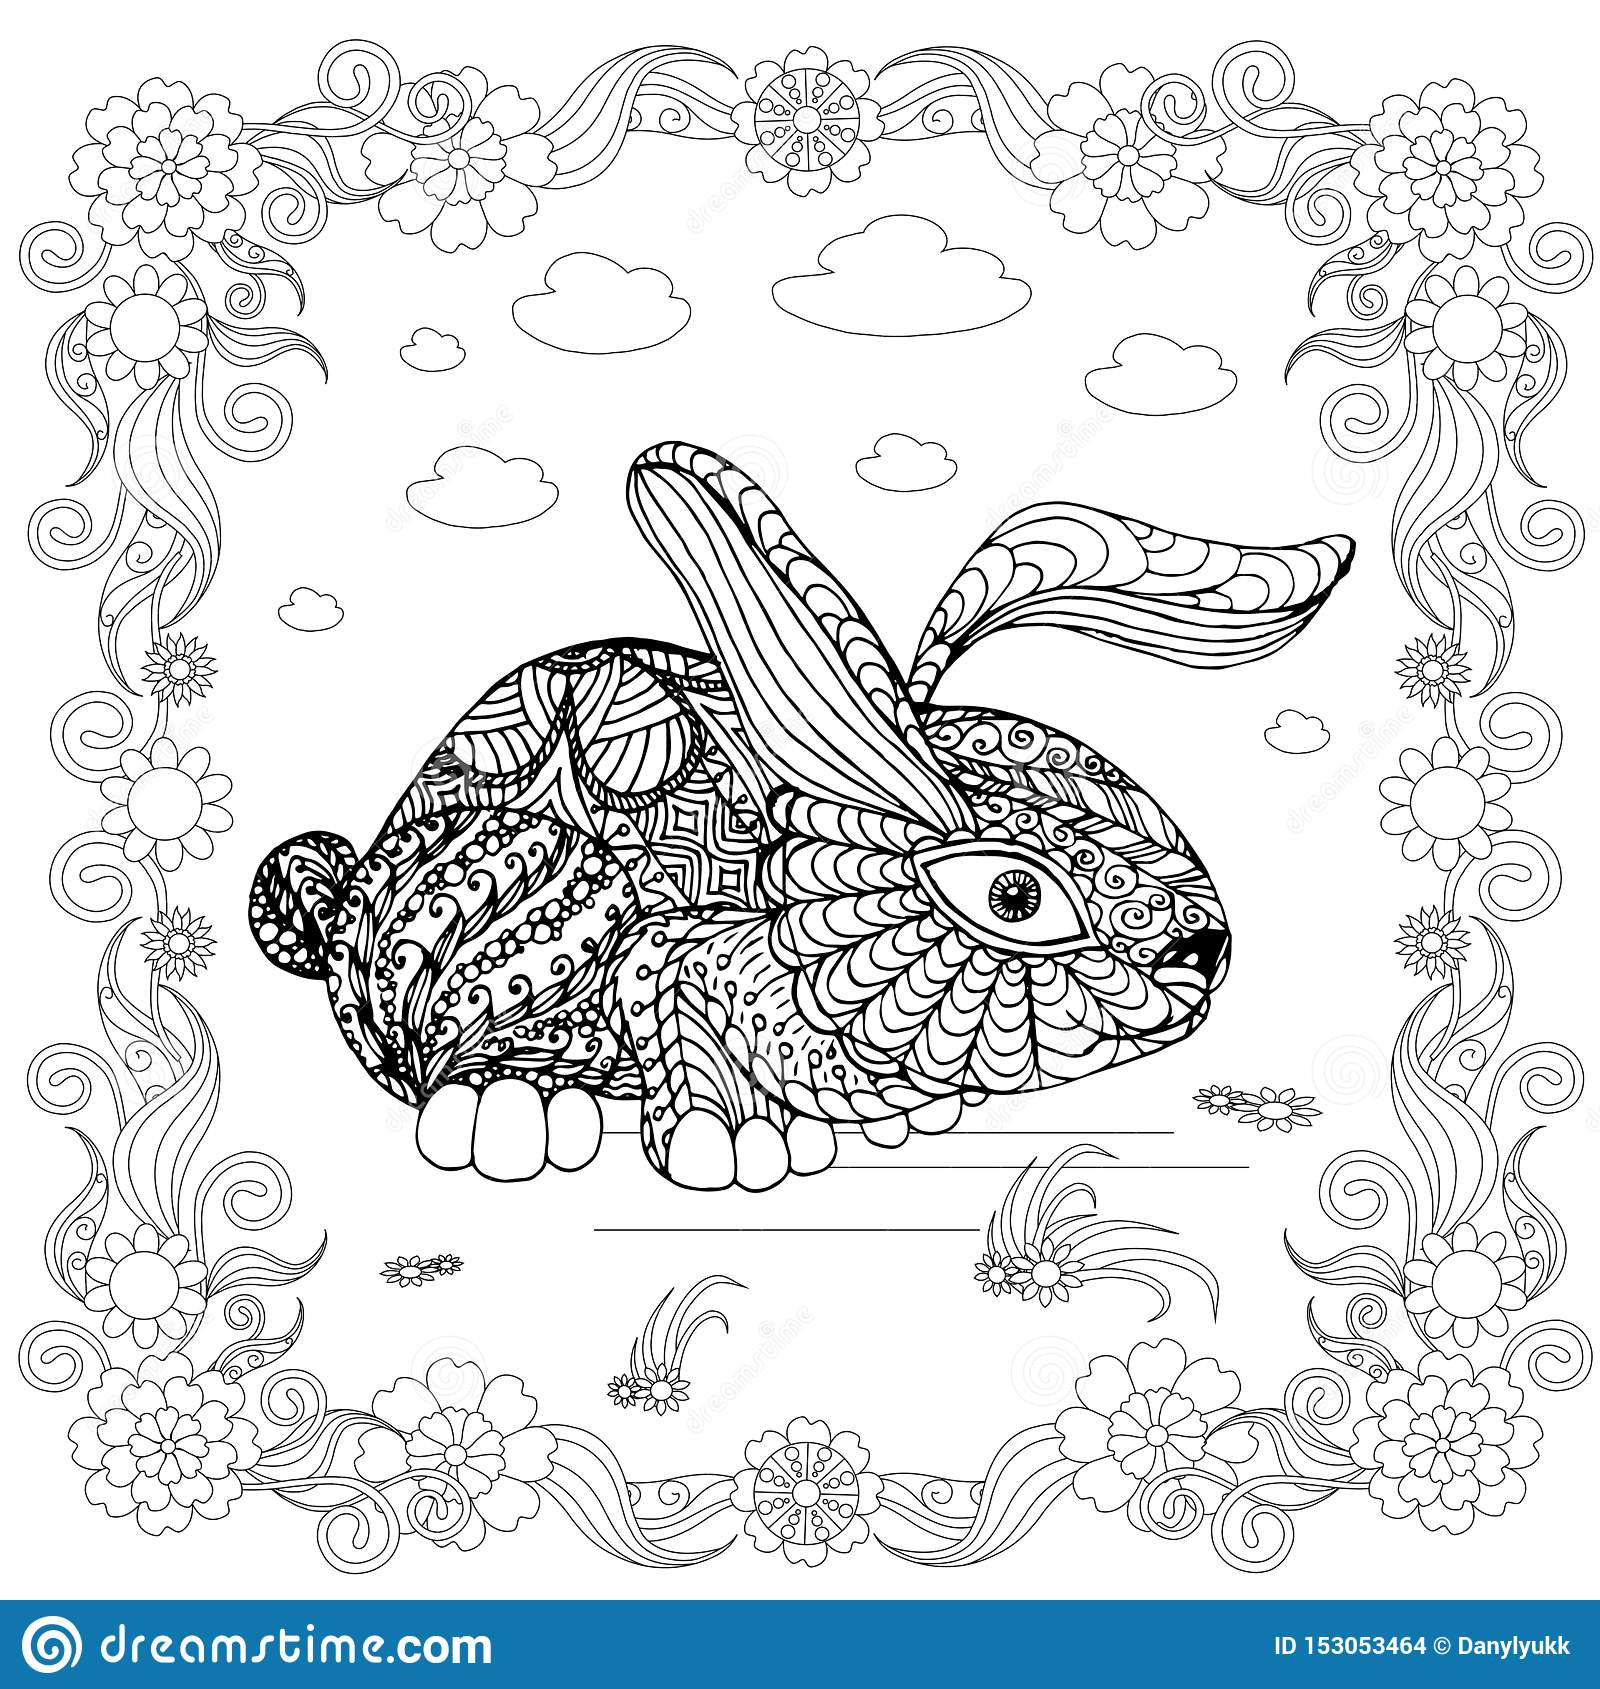 Cute Bunny Coloring Pages Baby Printable Here Are Of Bunnies ... | 1689x1600